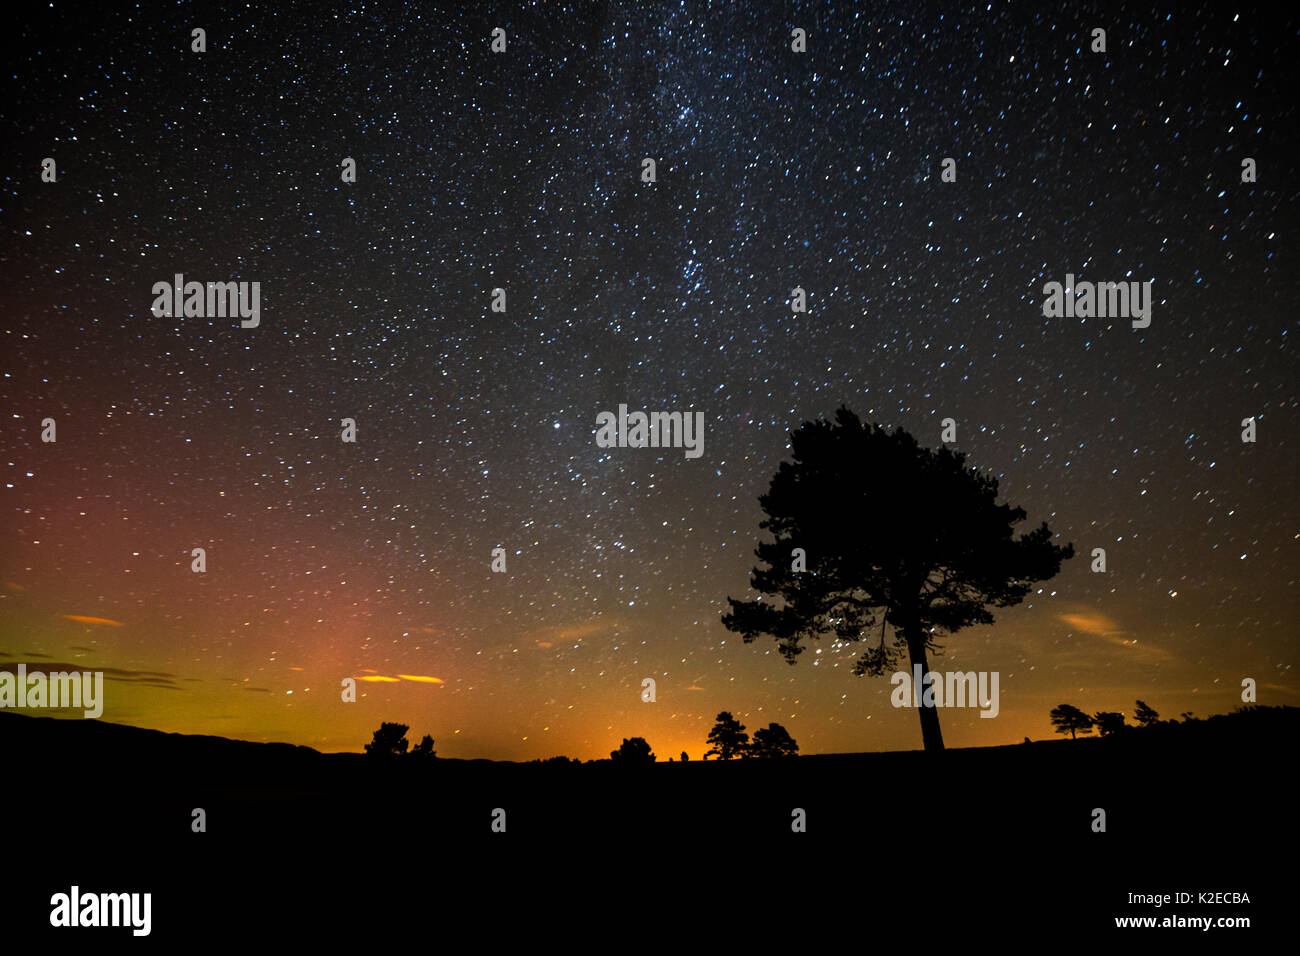 Scots pine (Pinus sylvestris) silhouetted against night sky, Cairngorms National Park, Scotland, UK, October 2015. - Stock Image